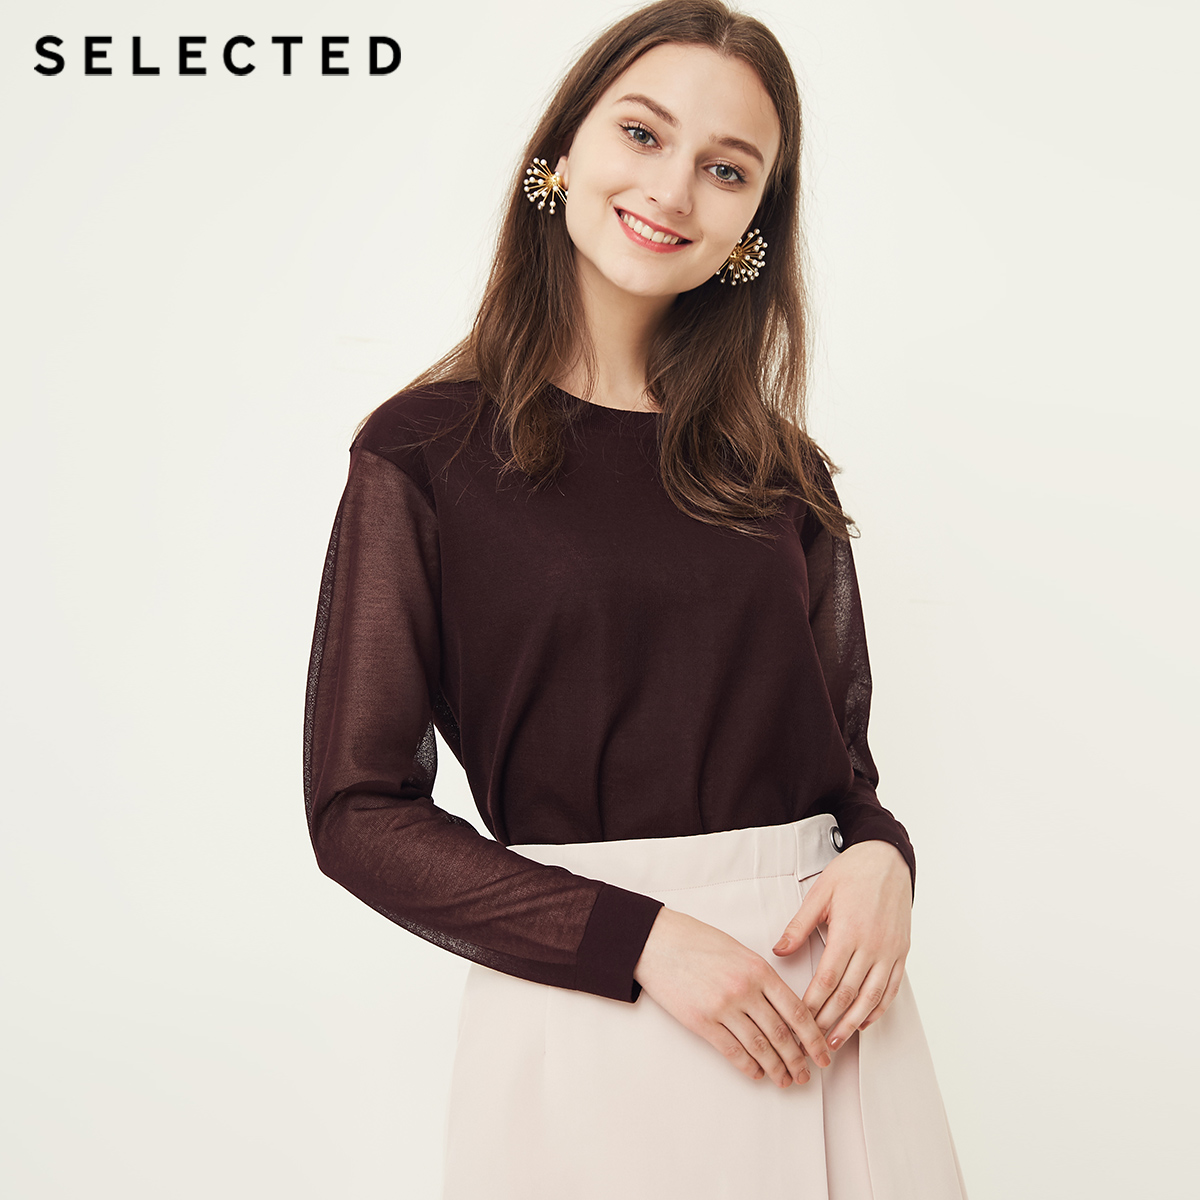 SELECTED New Women s Round collar Half perspective Drop Shoulder Sleeve Long sleeve Knitted Shirt S